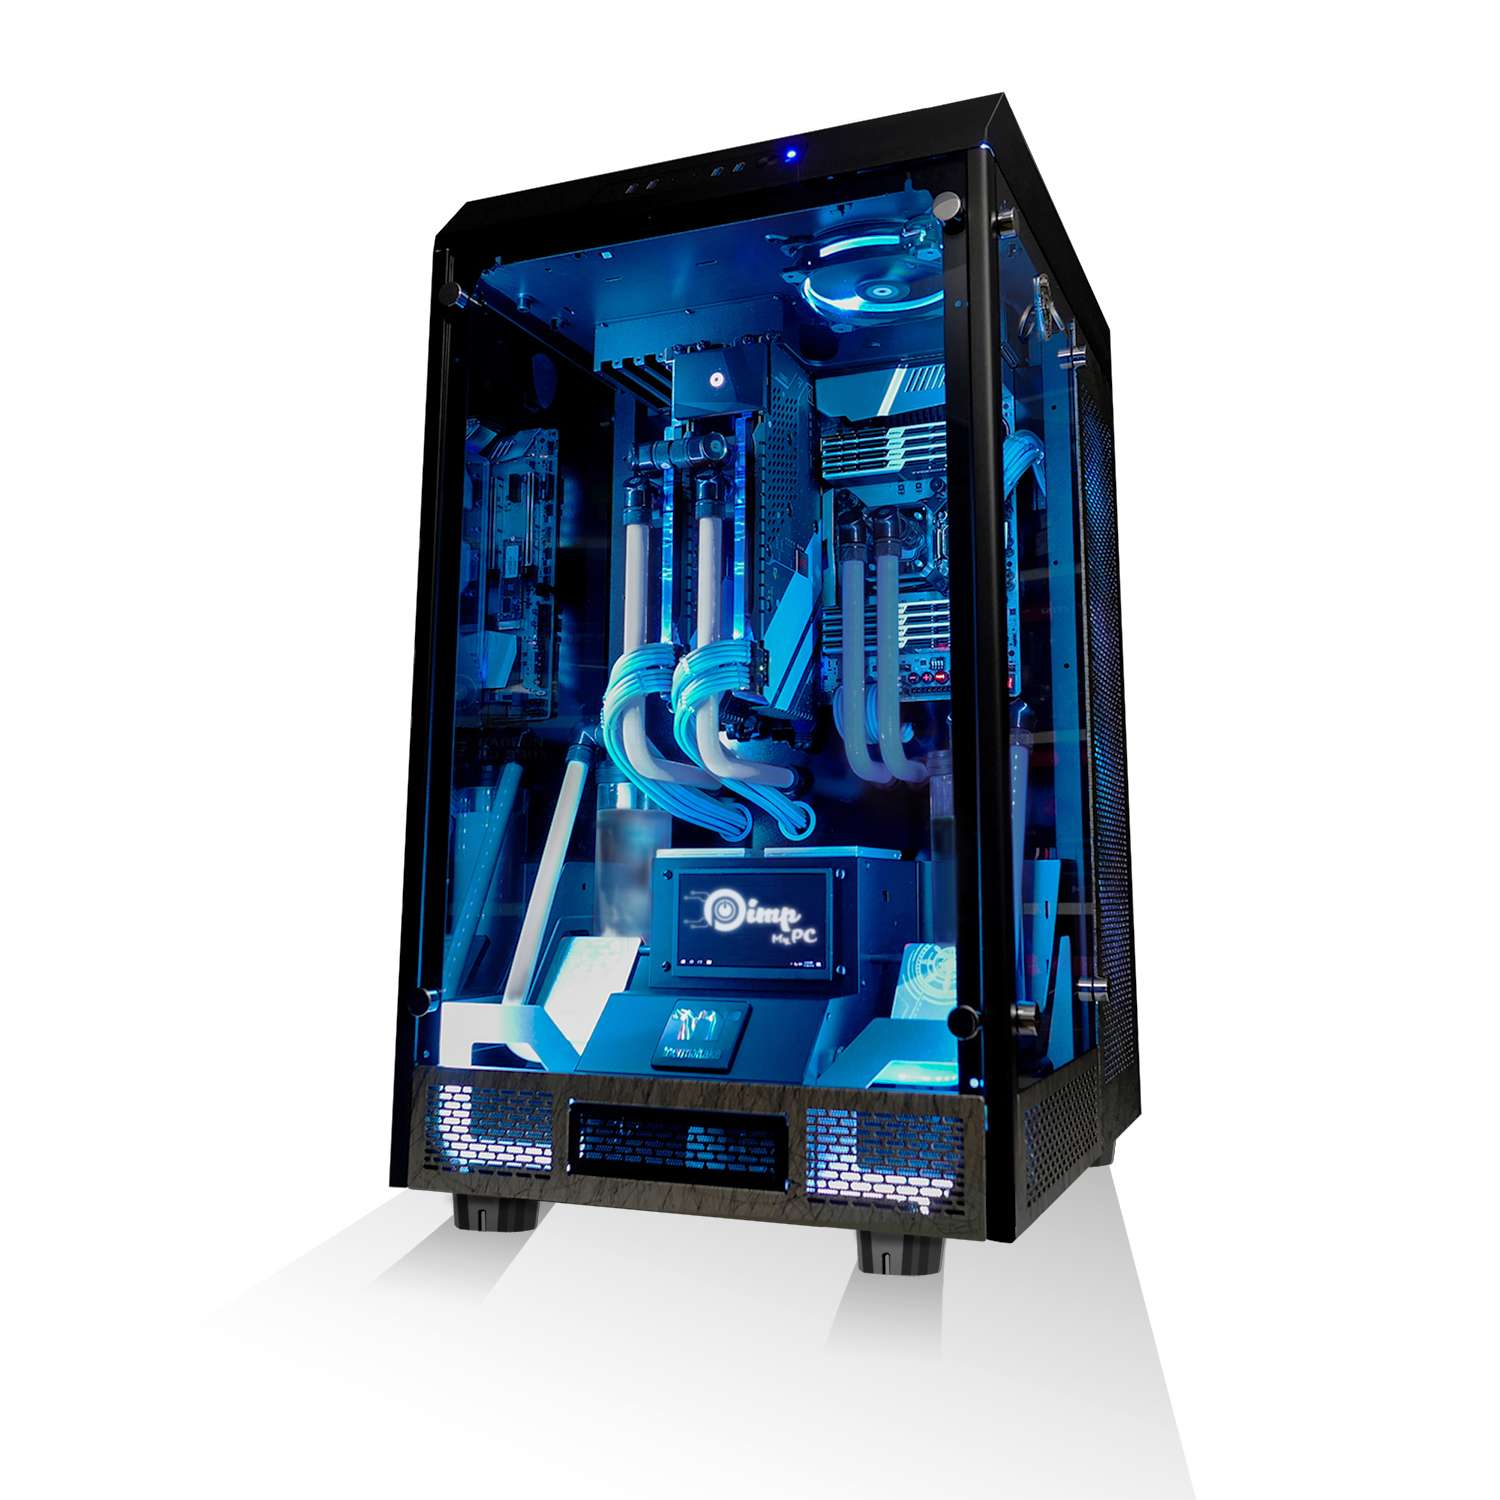 Acheter Ordinateur Pc Watercooling Custom Achat De Pc Watercooling Custom